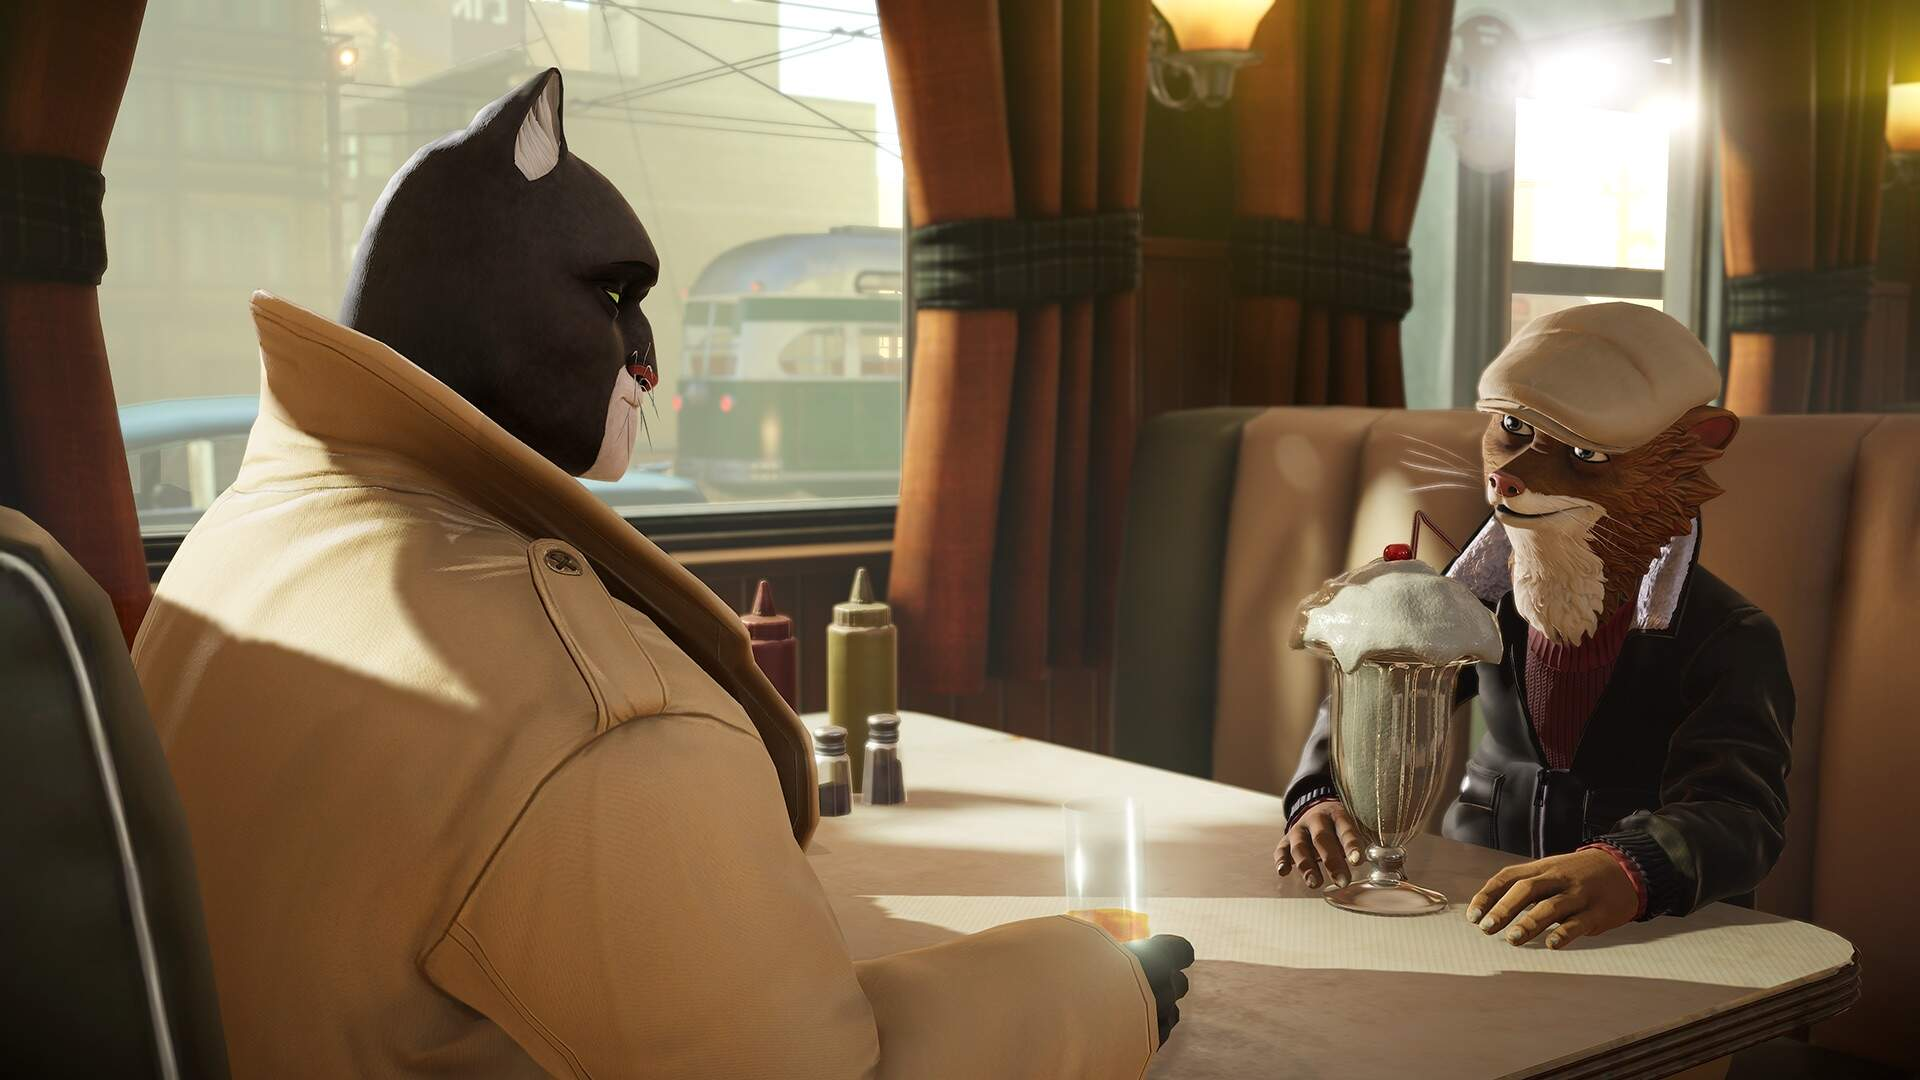 Europe Didn't Get the Memo About Blacksad: Under the Skin's Release Date Delay